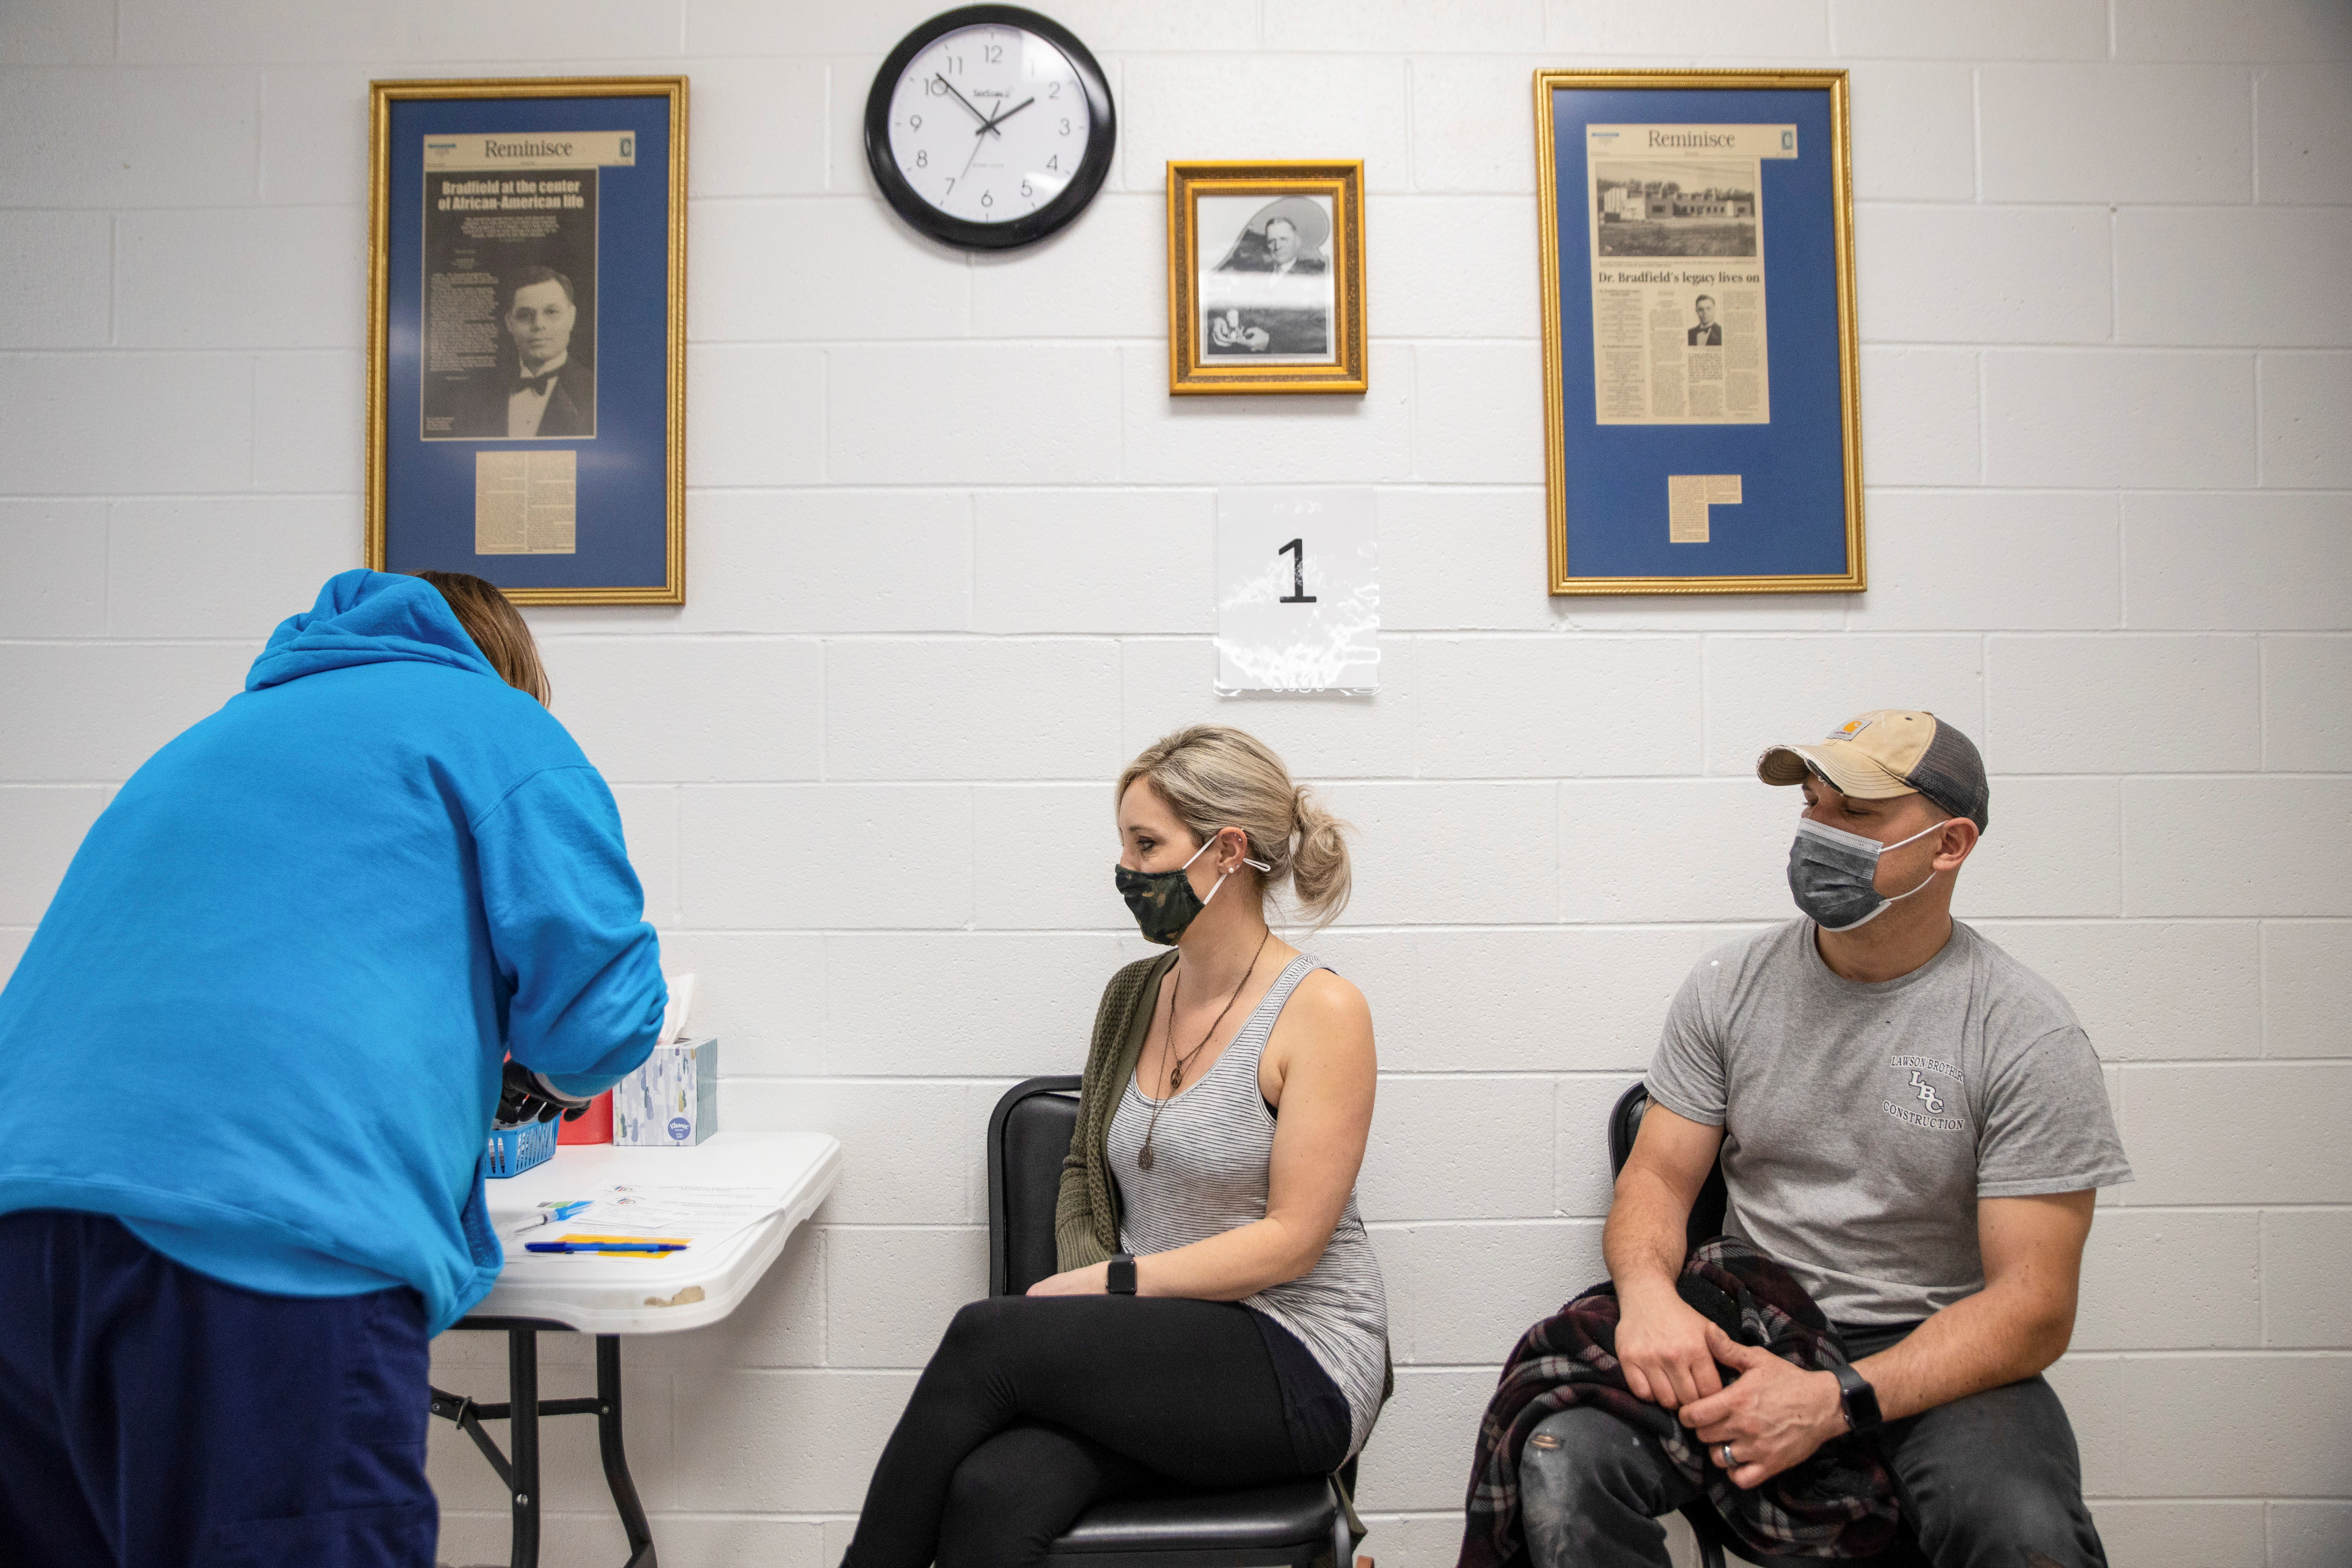 Stefanie Dunahay, 39, and Matt Dunahay, 39, wait to receive their coronavirus disease (COVID-19) vaccine as vaccine eligibility expands to anyone over the age of 16 at the Bradfield Community Center through Health Partners of Western Ohio in Lima, Ohio, U.S., March 29, 2021.  REUTERS/Megan Jelinger/File Photo